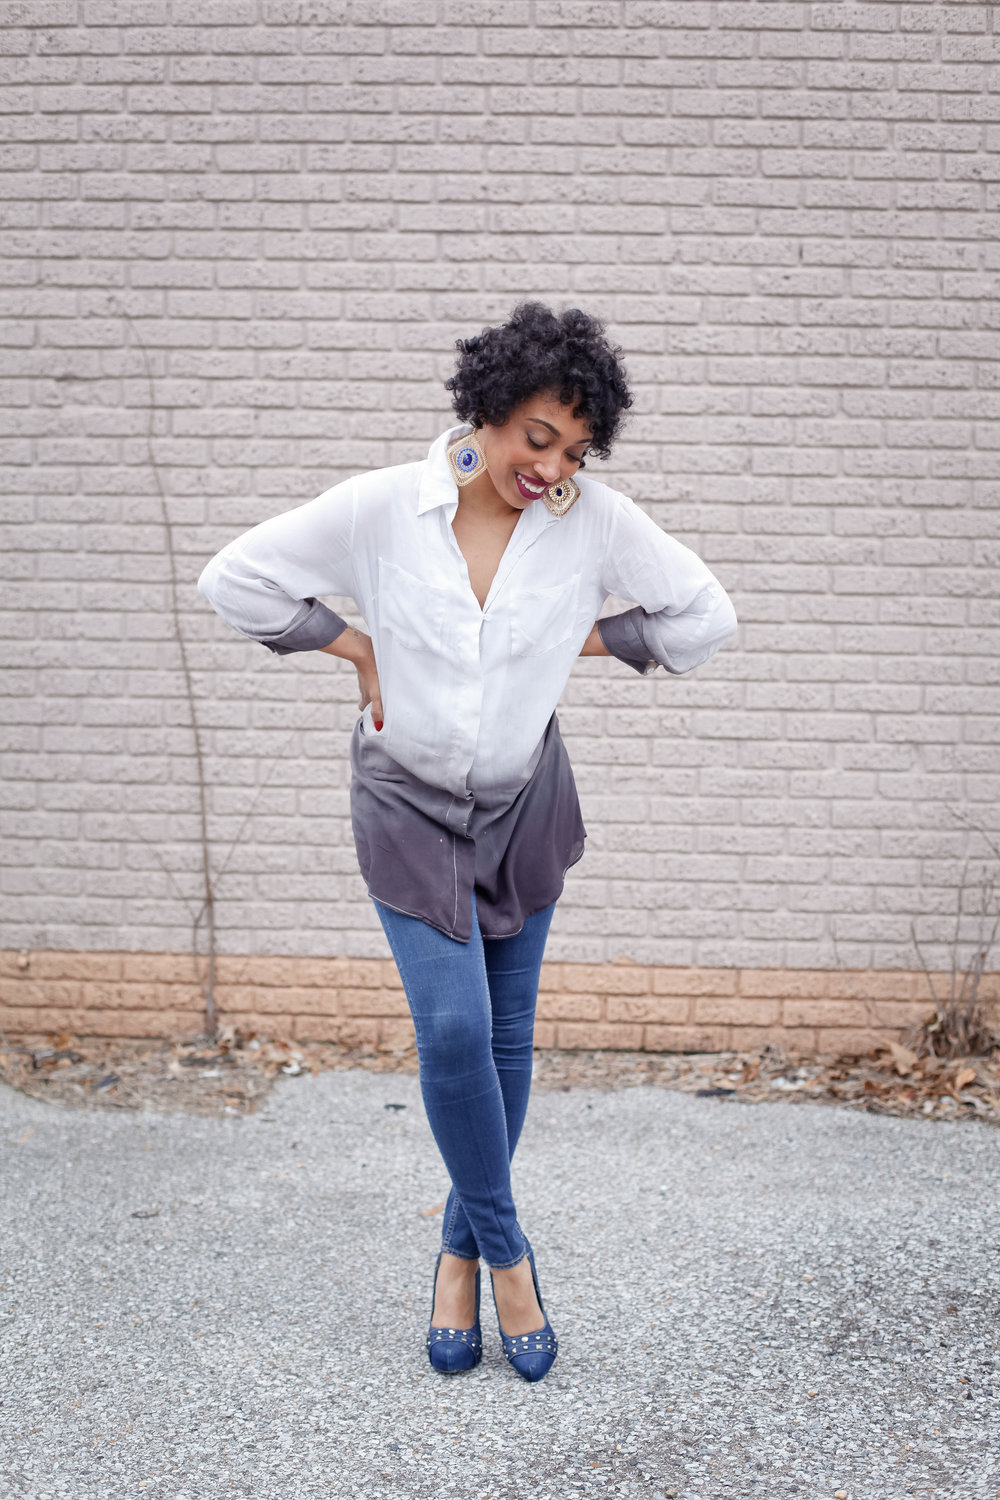 Andrea Fenise Memphis Fashion Blogger shares outfit post with Ombre Top and Denim